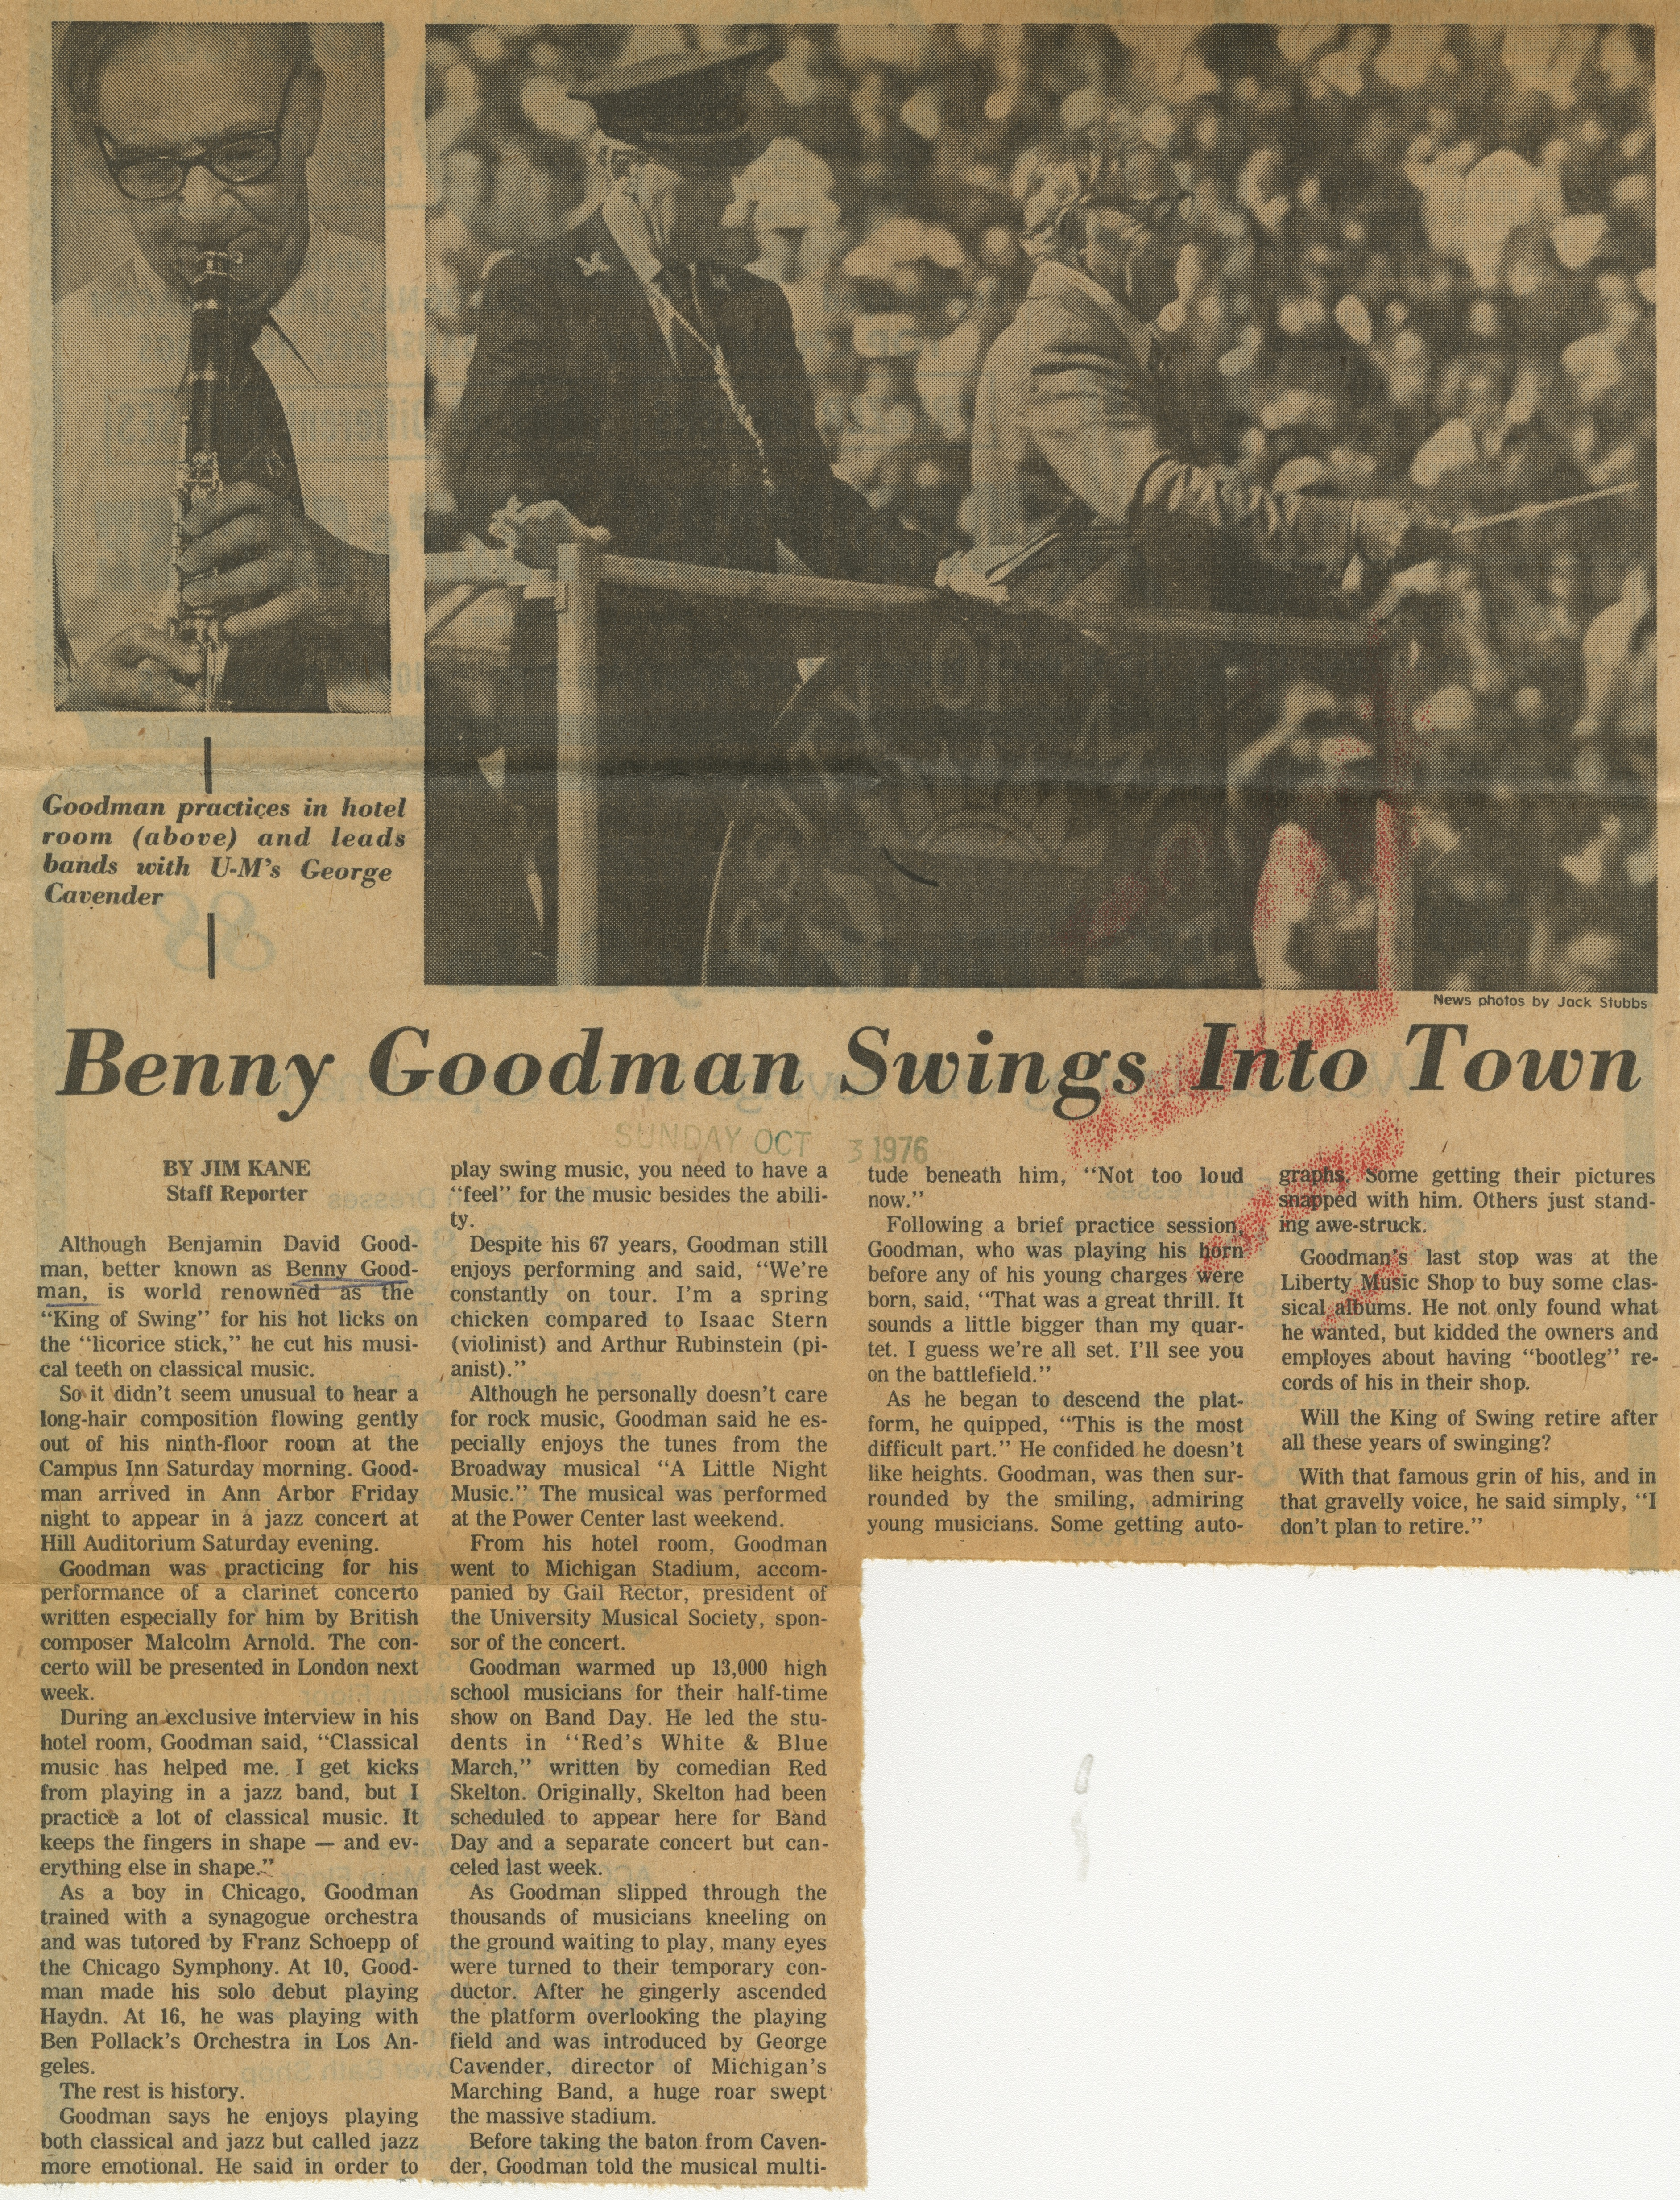 Benny Goodman Swings Into Town image